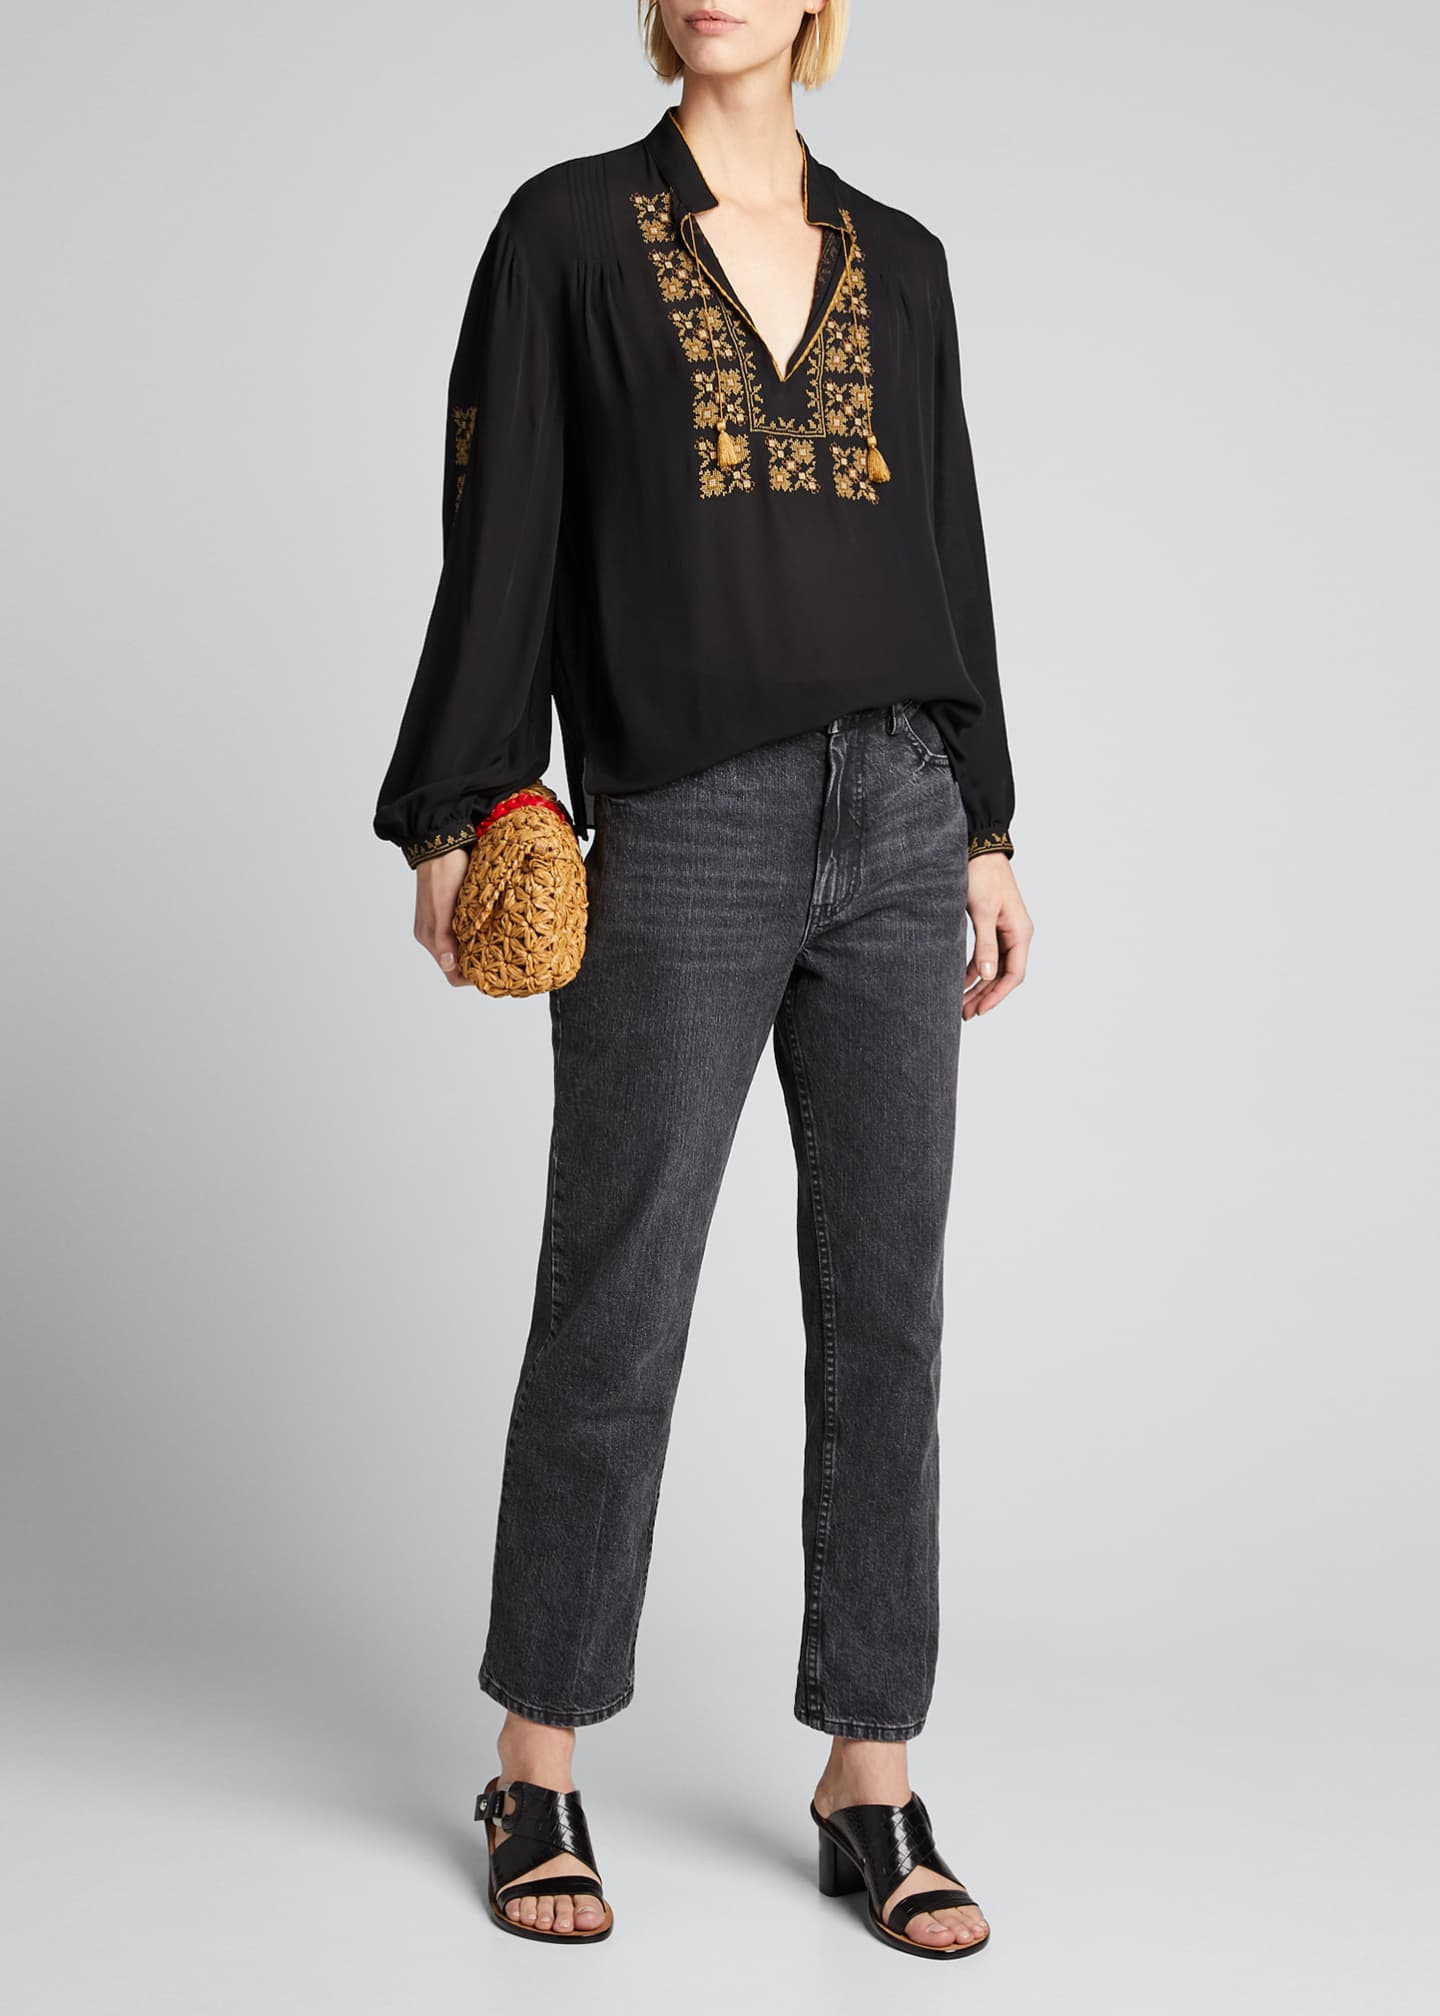 Image 1 of 5: Karina Palestinian Embroidered Top